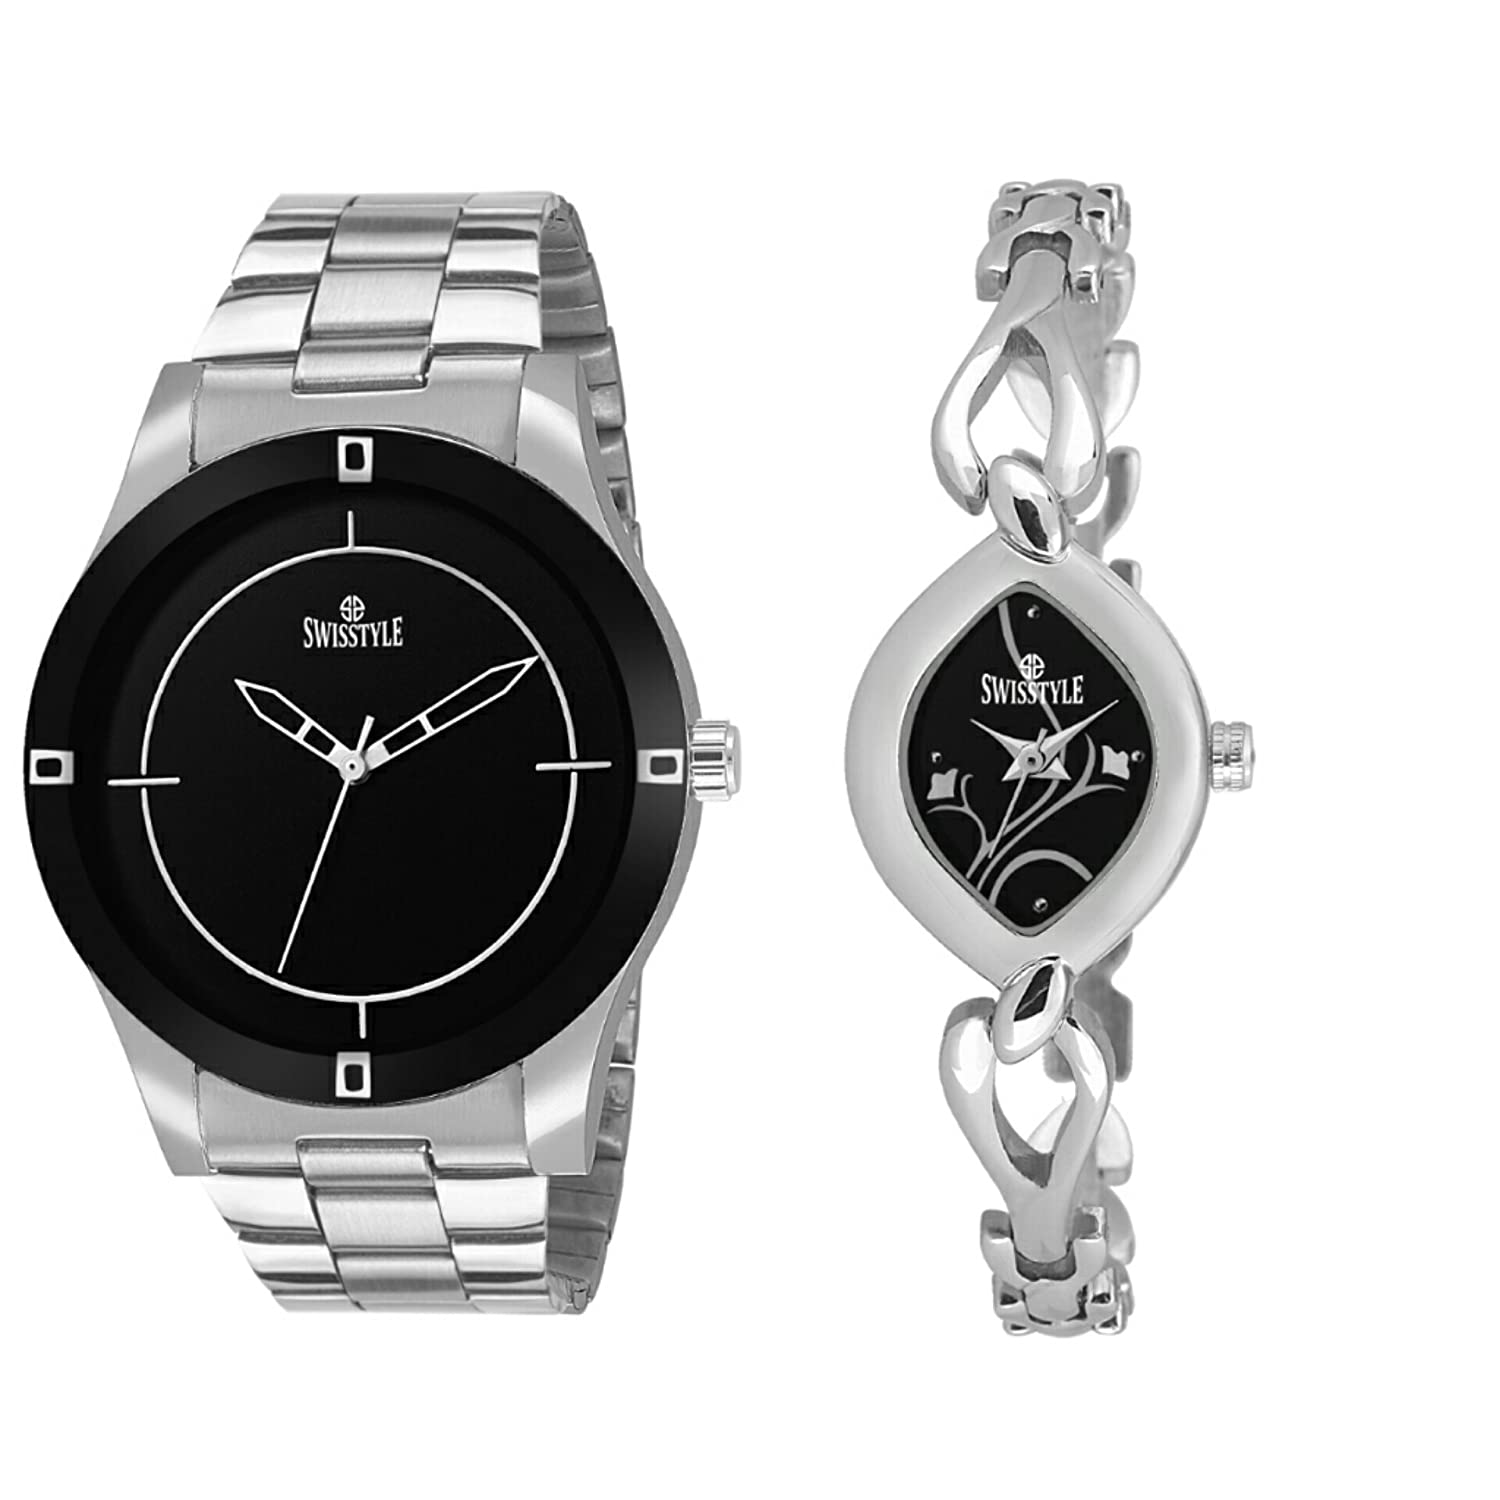 3d65314049c Buy Swisstyle Analog Black Dial Men s and Women s Combo Watch-  SS-1718B-300B Online at Low Prices in India - Amazon.in